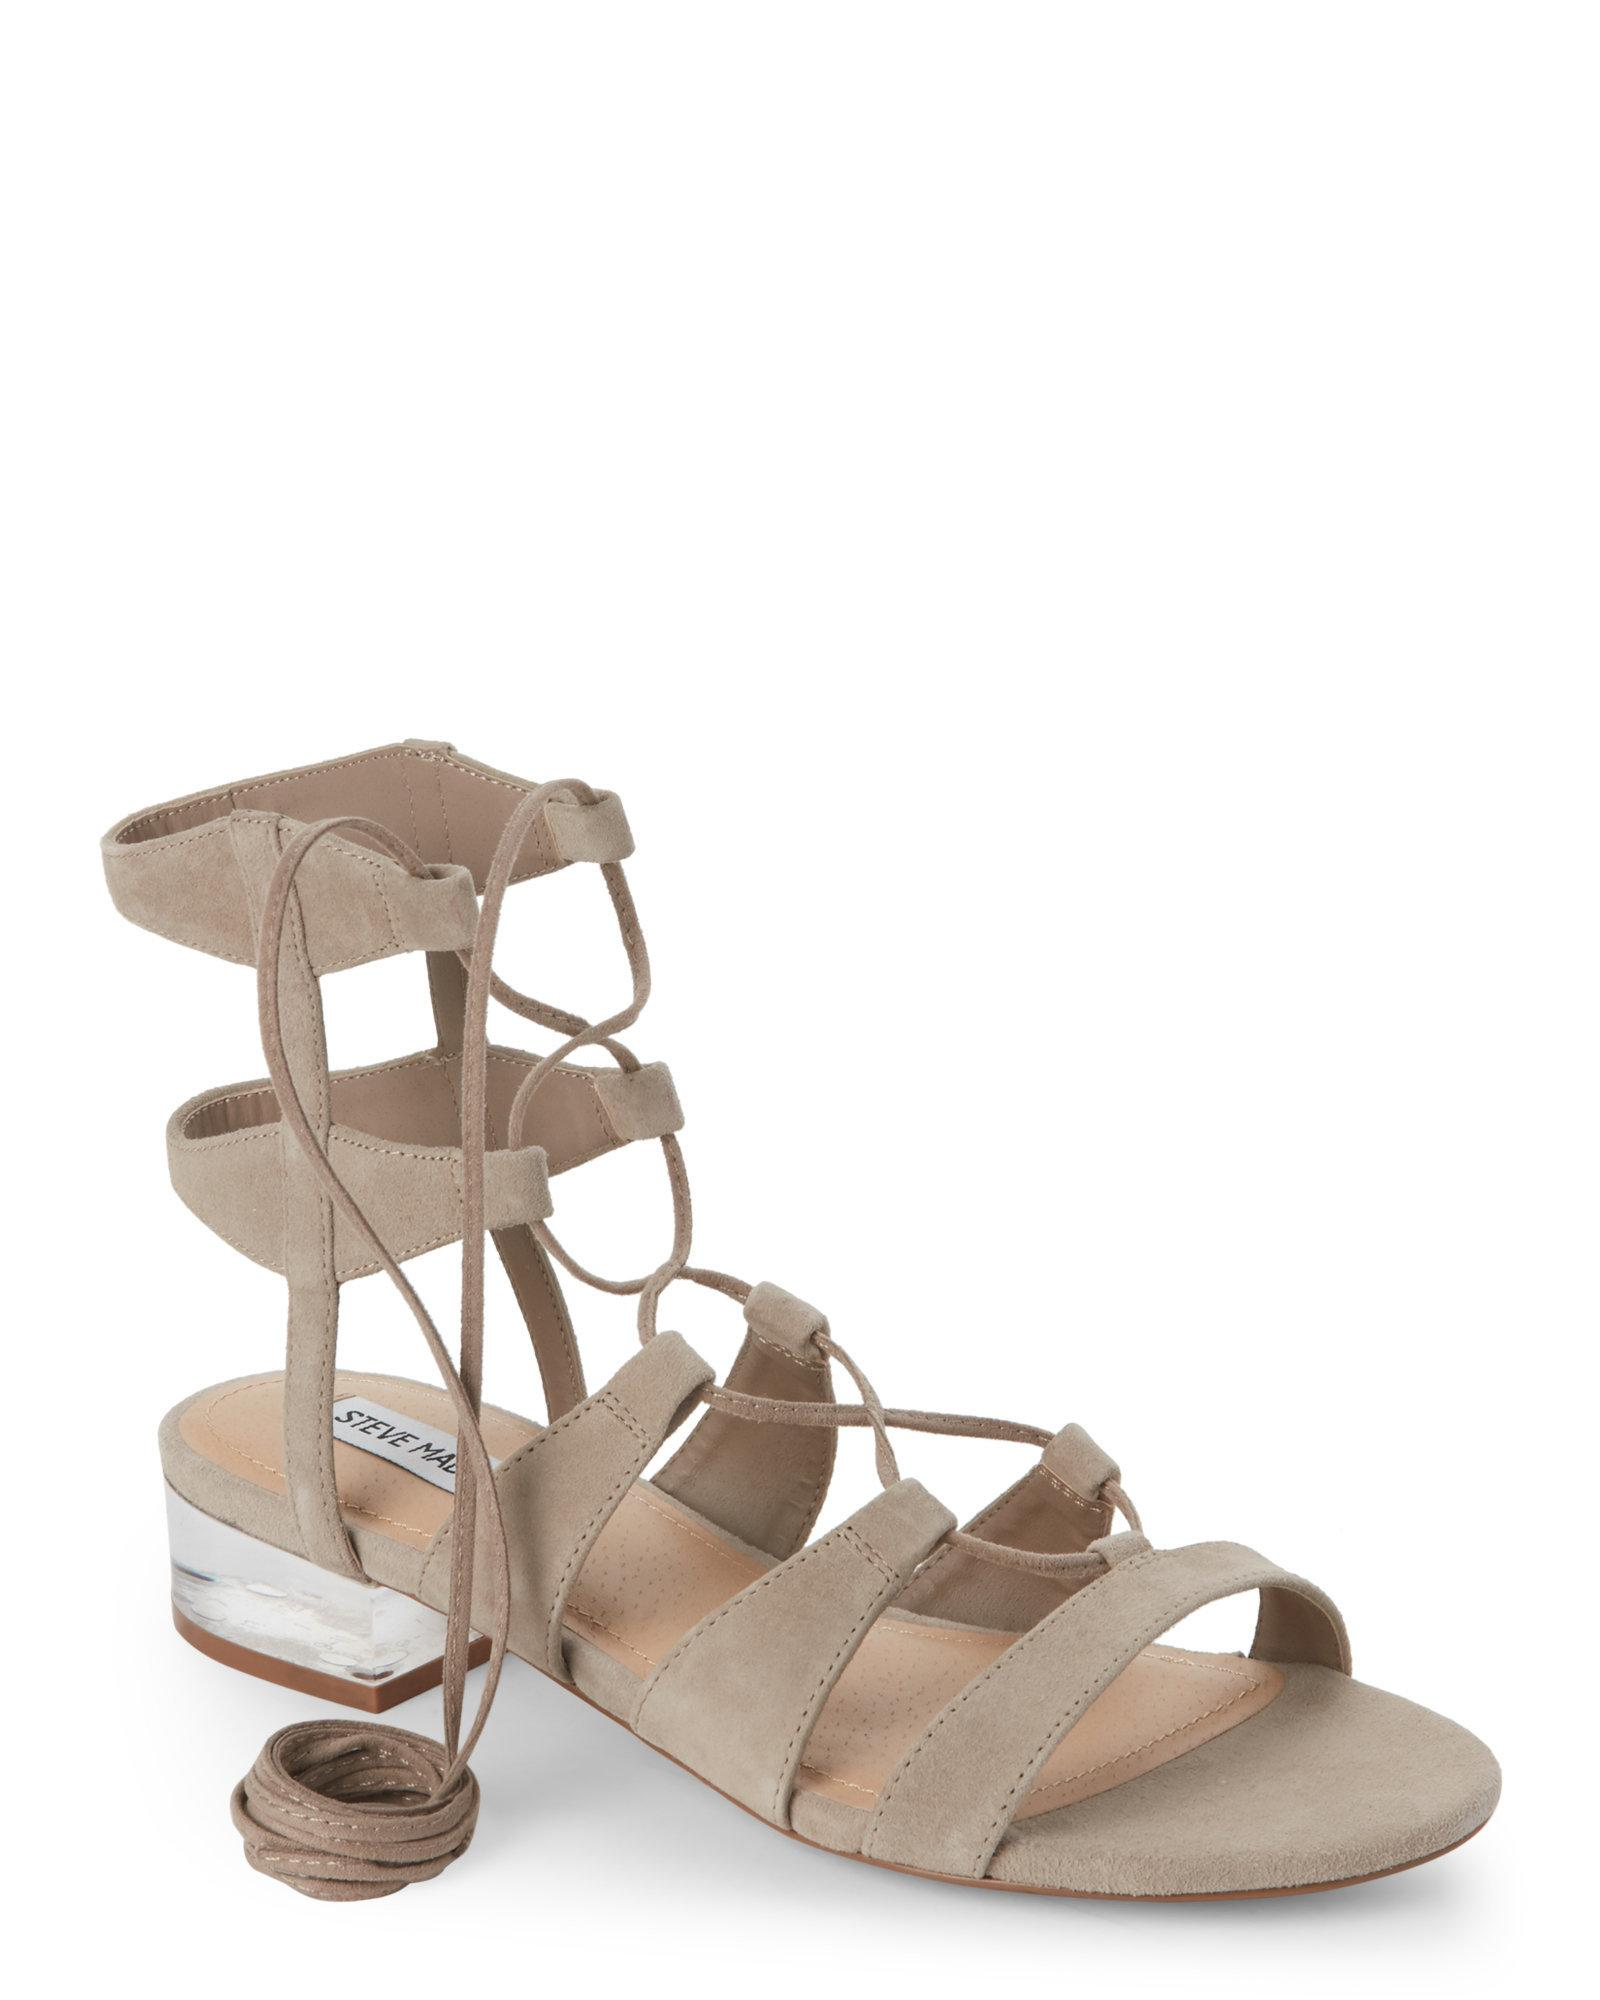 3db0e107326 Gallery. Previously sold at  Century 21 · Women s Gladiator Sandals ...